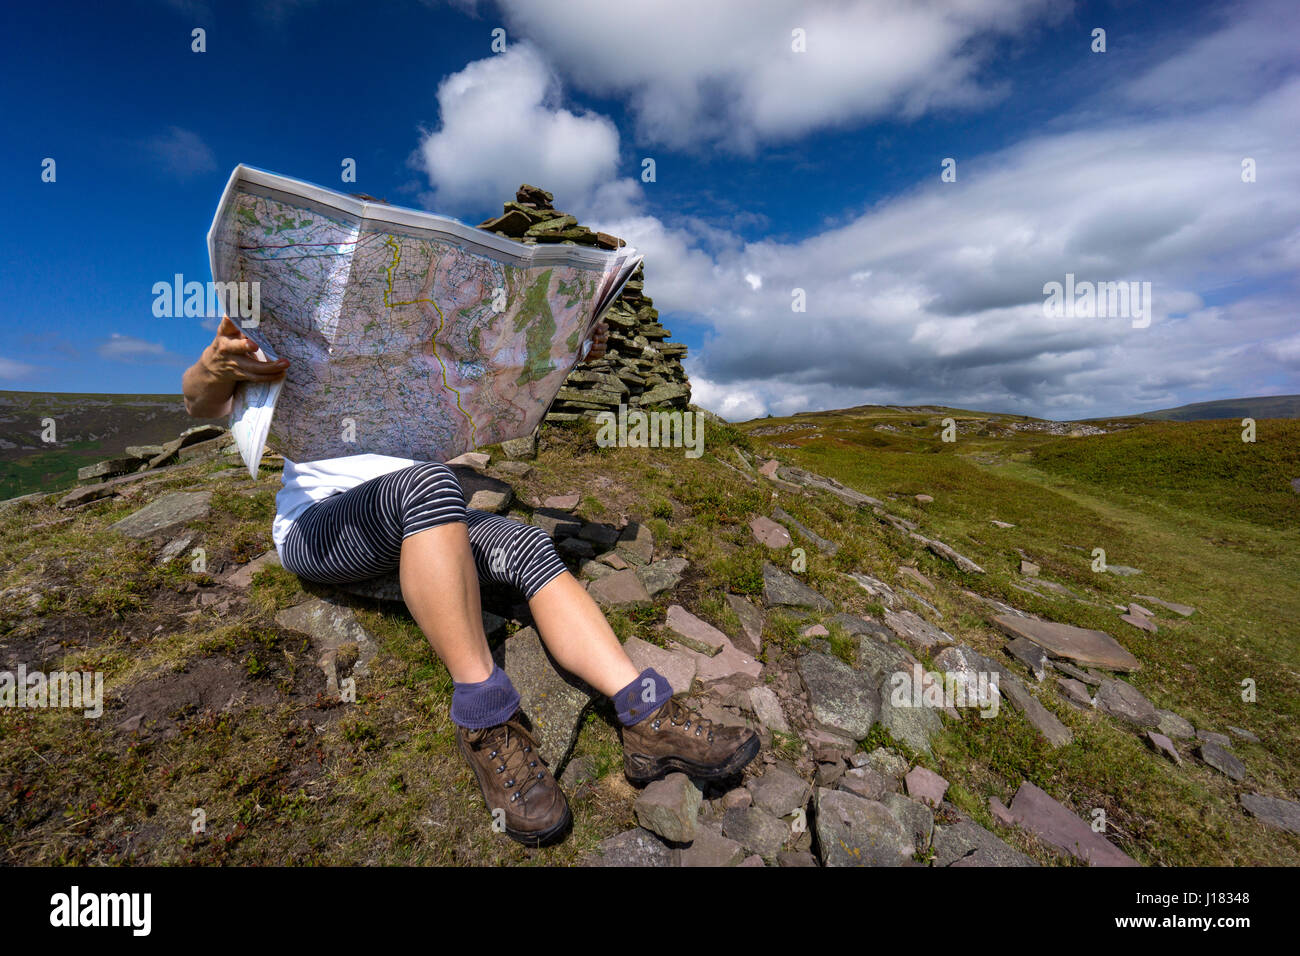 Woman hiker map reading in the Black Mountains, Brecon Beacons national park - Stock Image